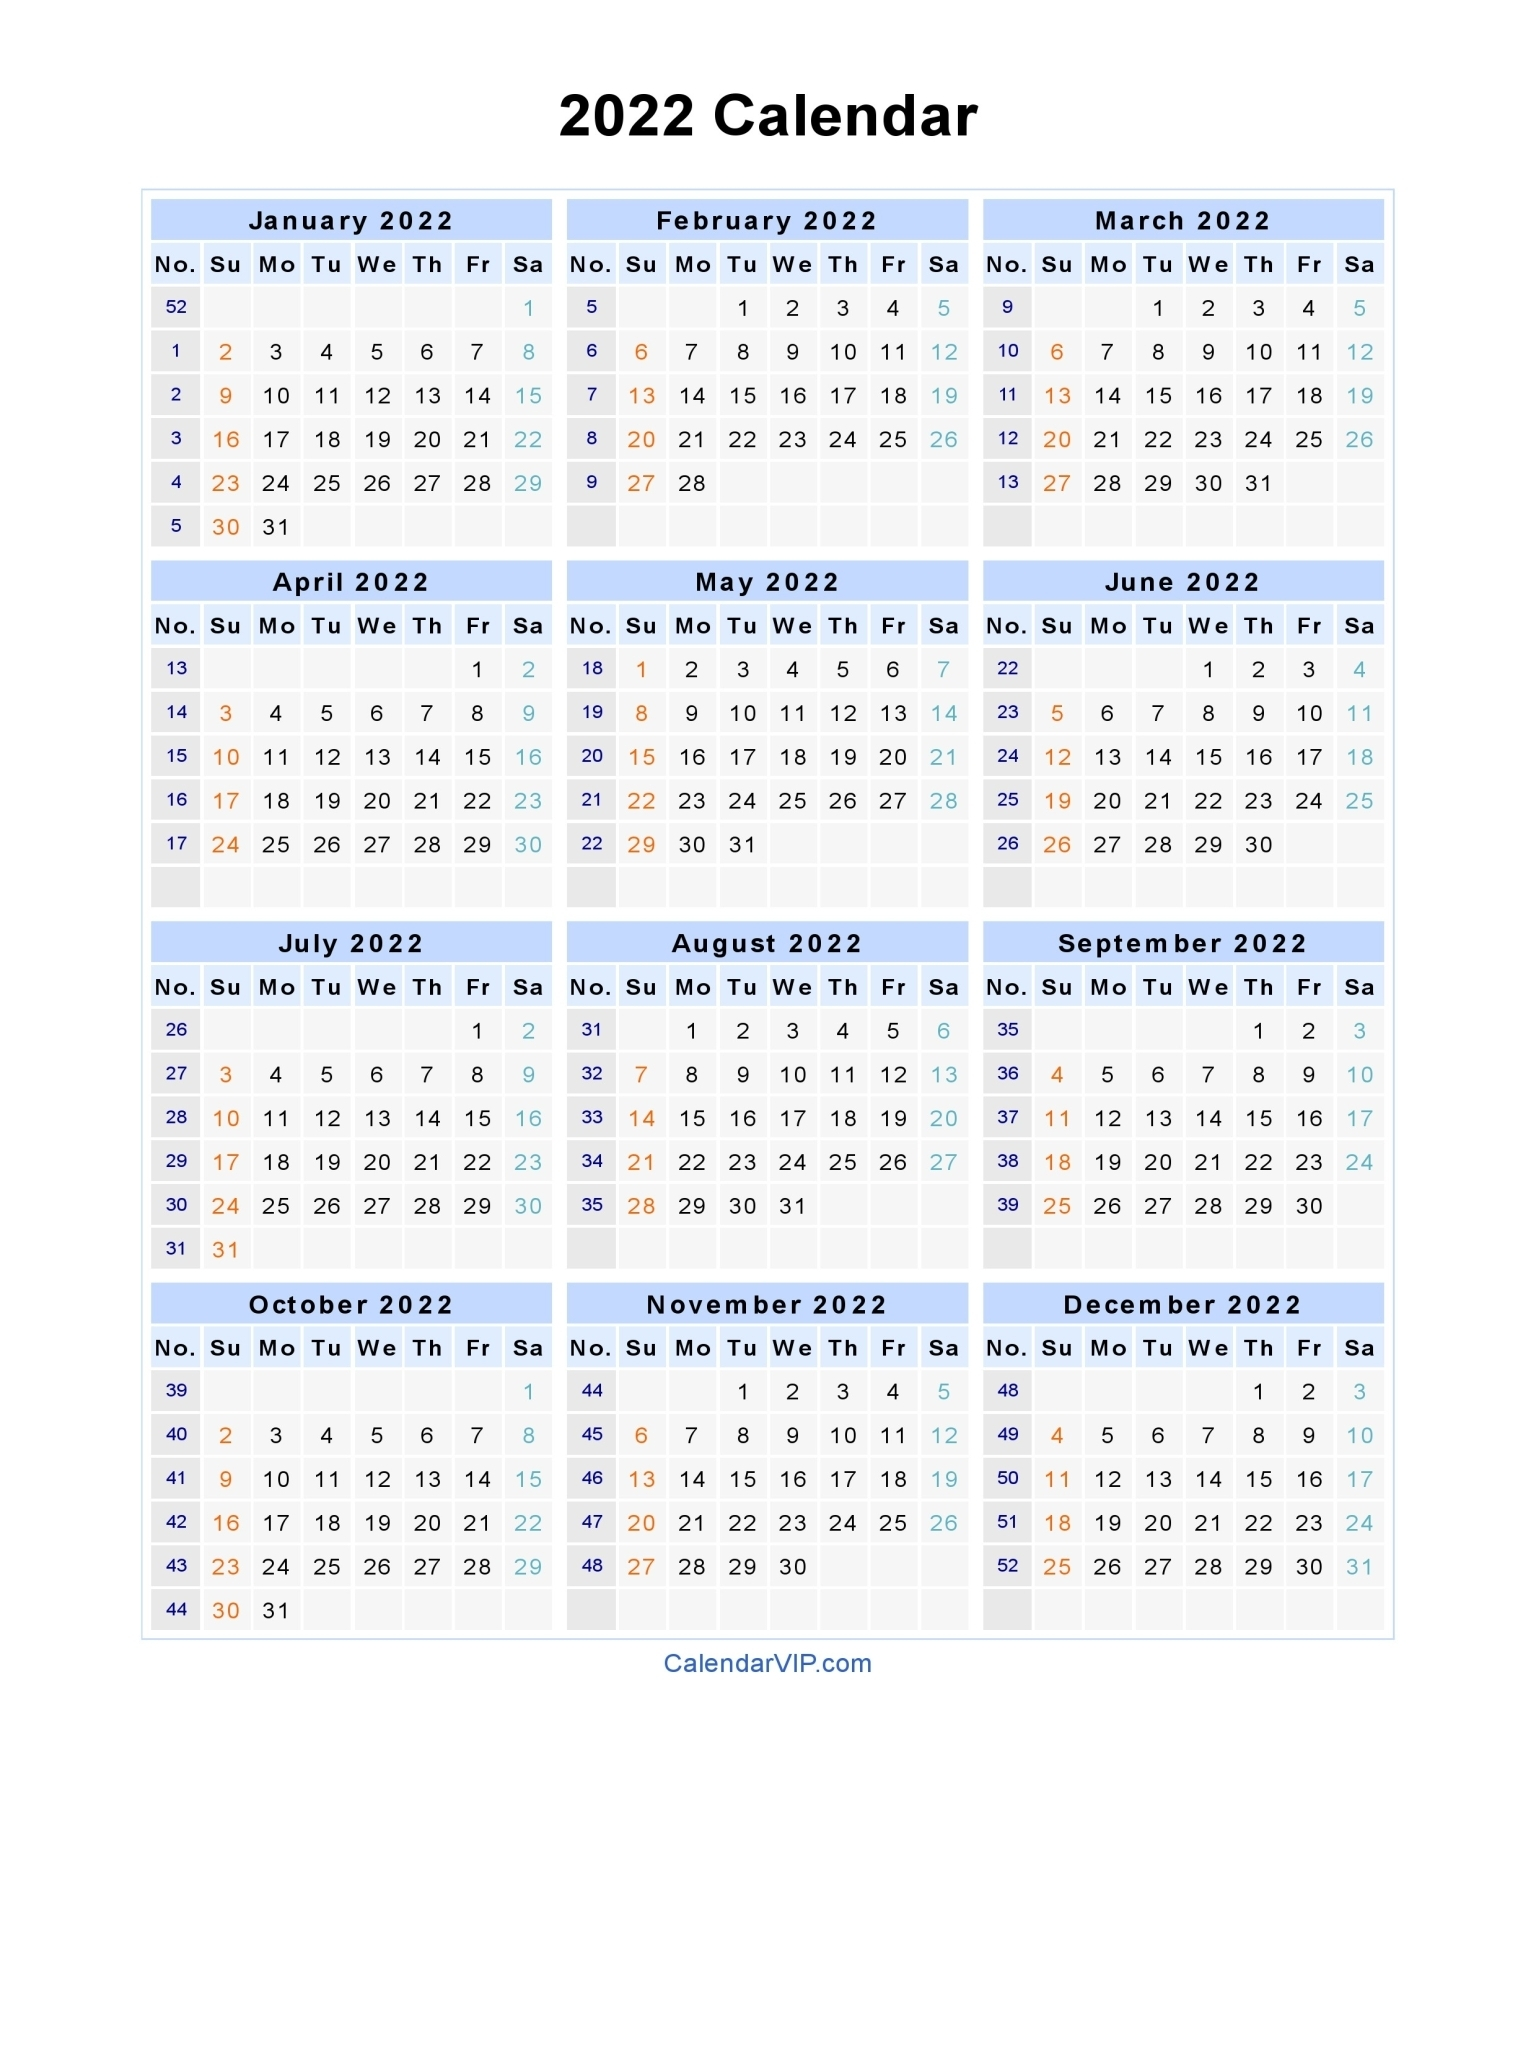 2022 Calendar - Blank Printable Calendar Template In Pdf Word Excel for Blank Year Long Calendar 2022